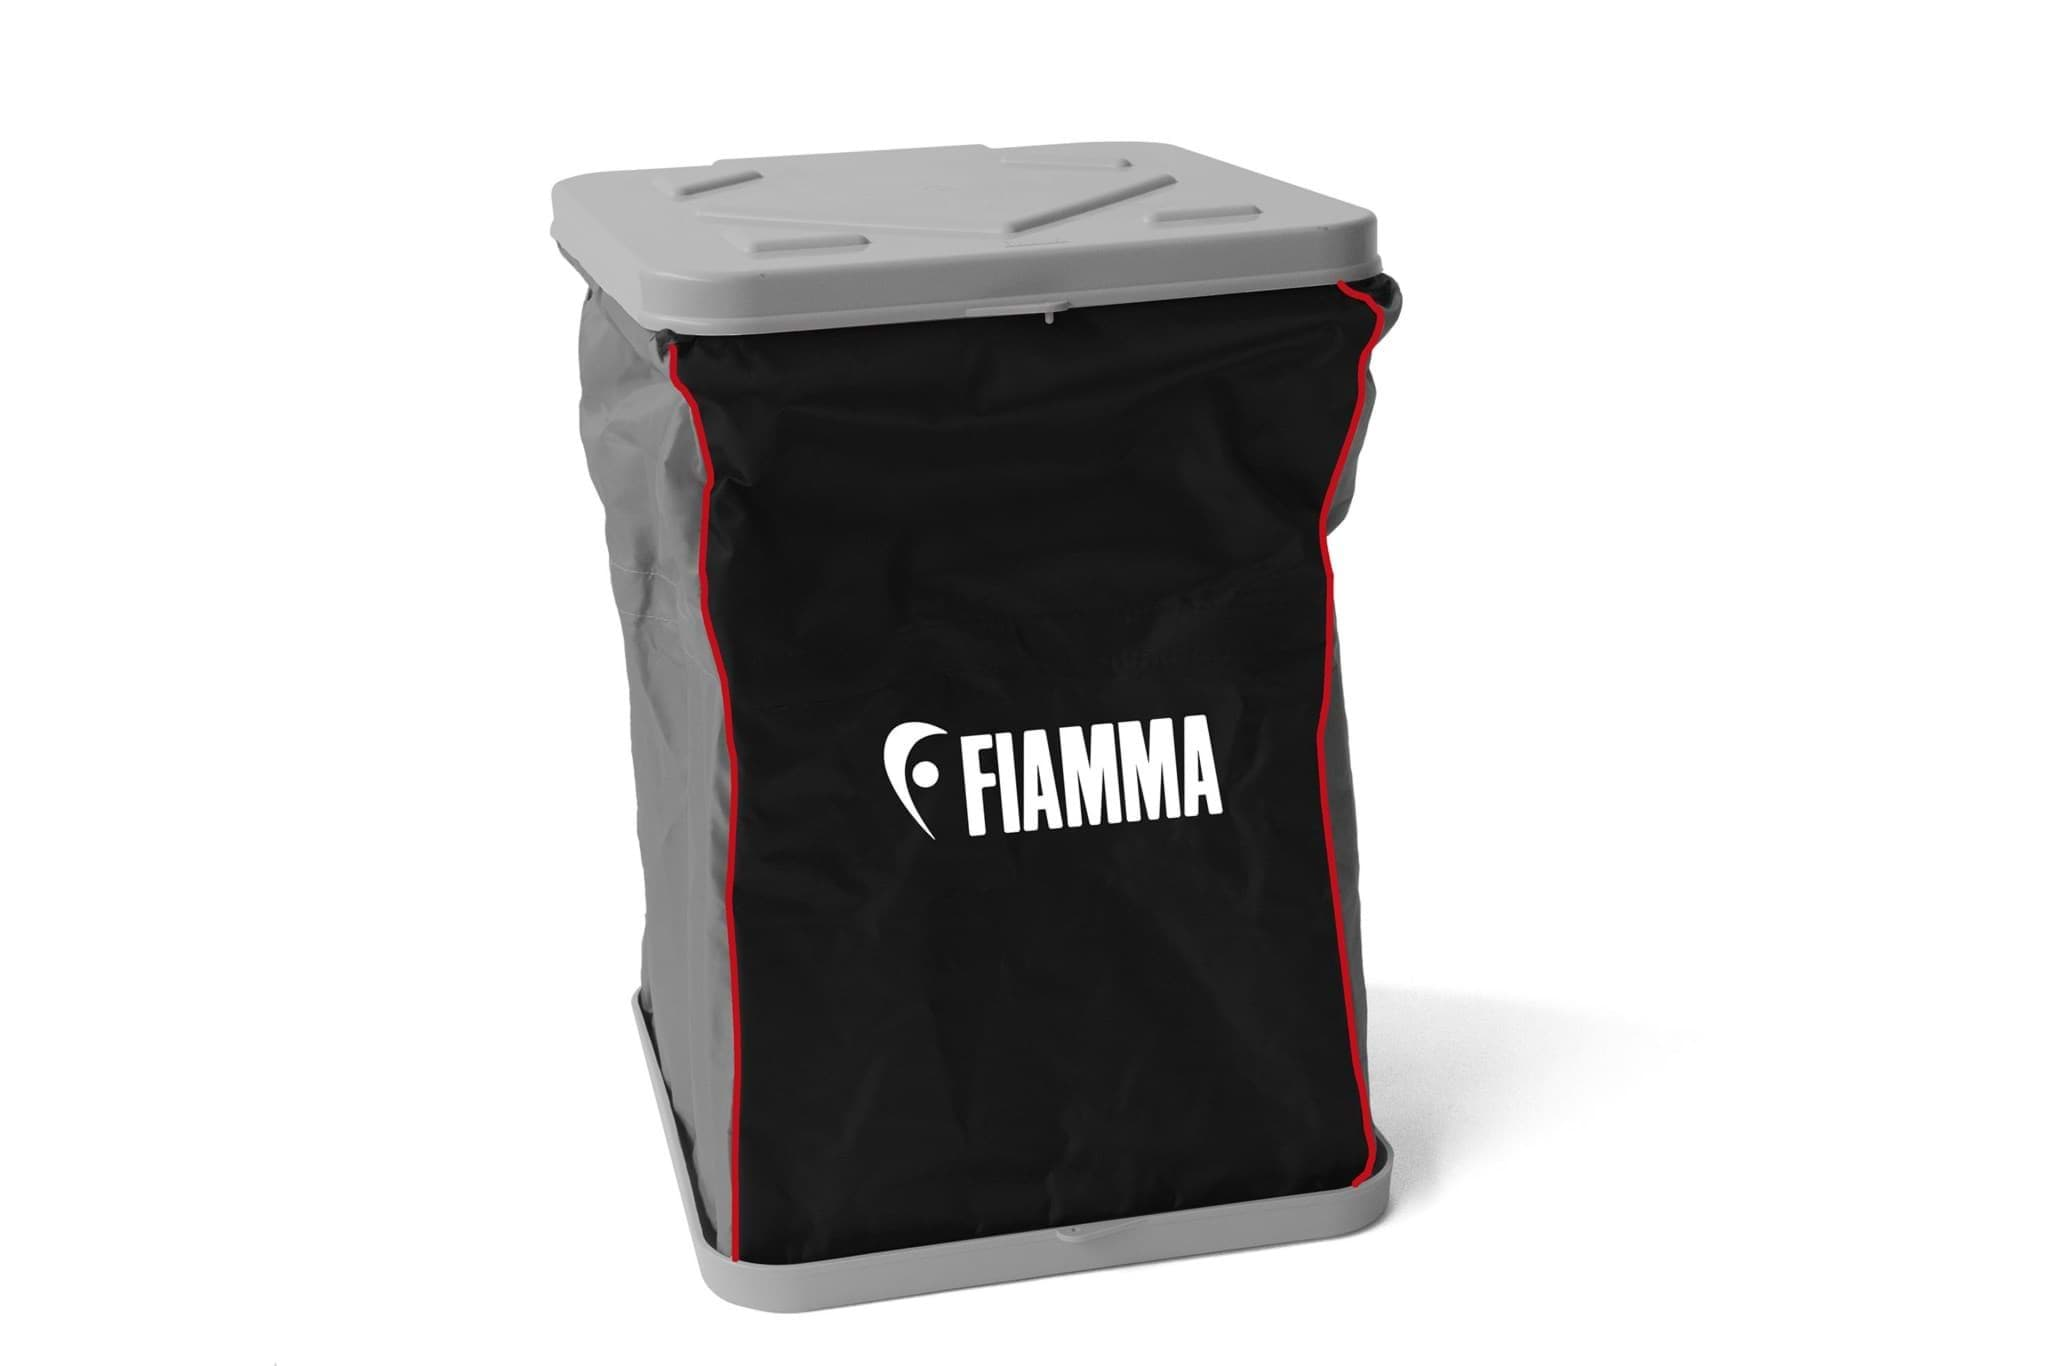 FIAMMA PACK WASTE | Badé - Outdoor Living on Bade Outdoor Living  id=59975